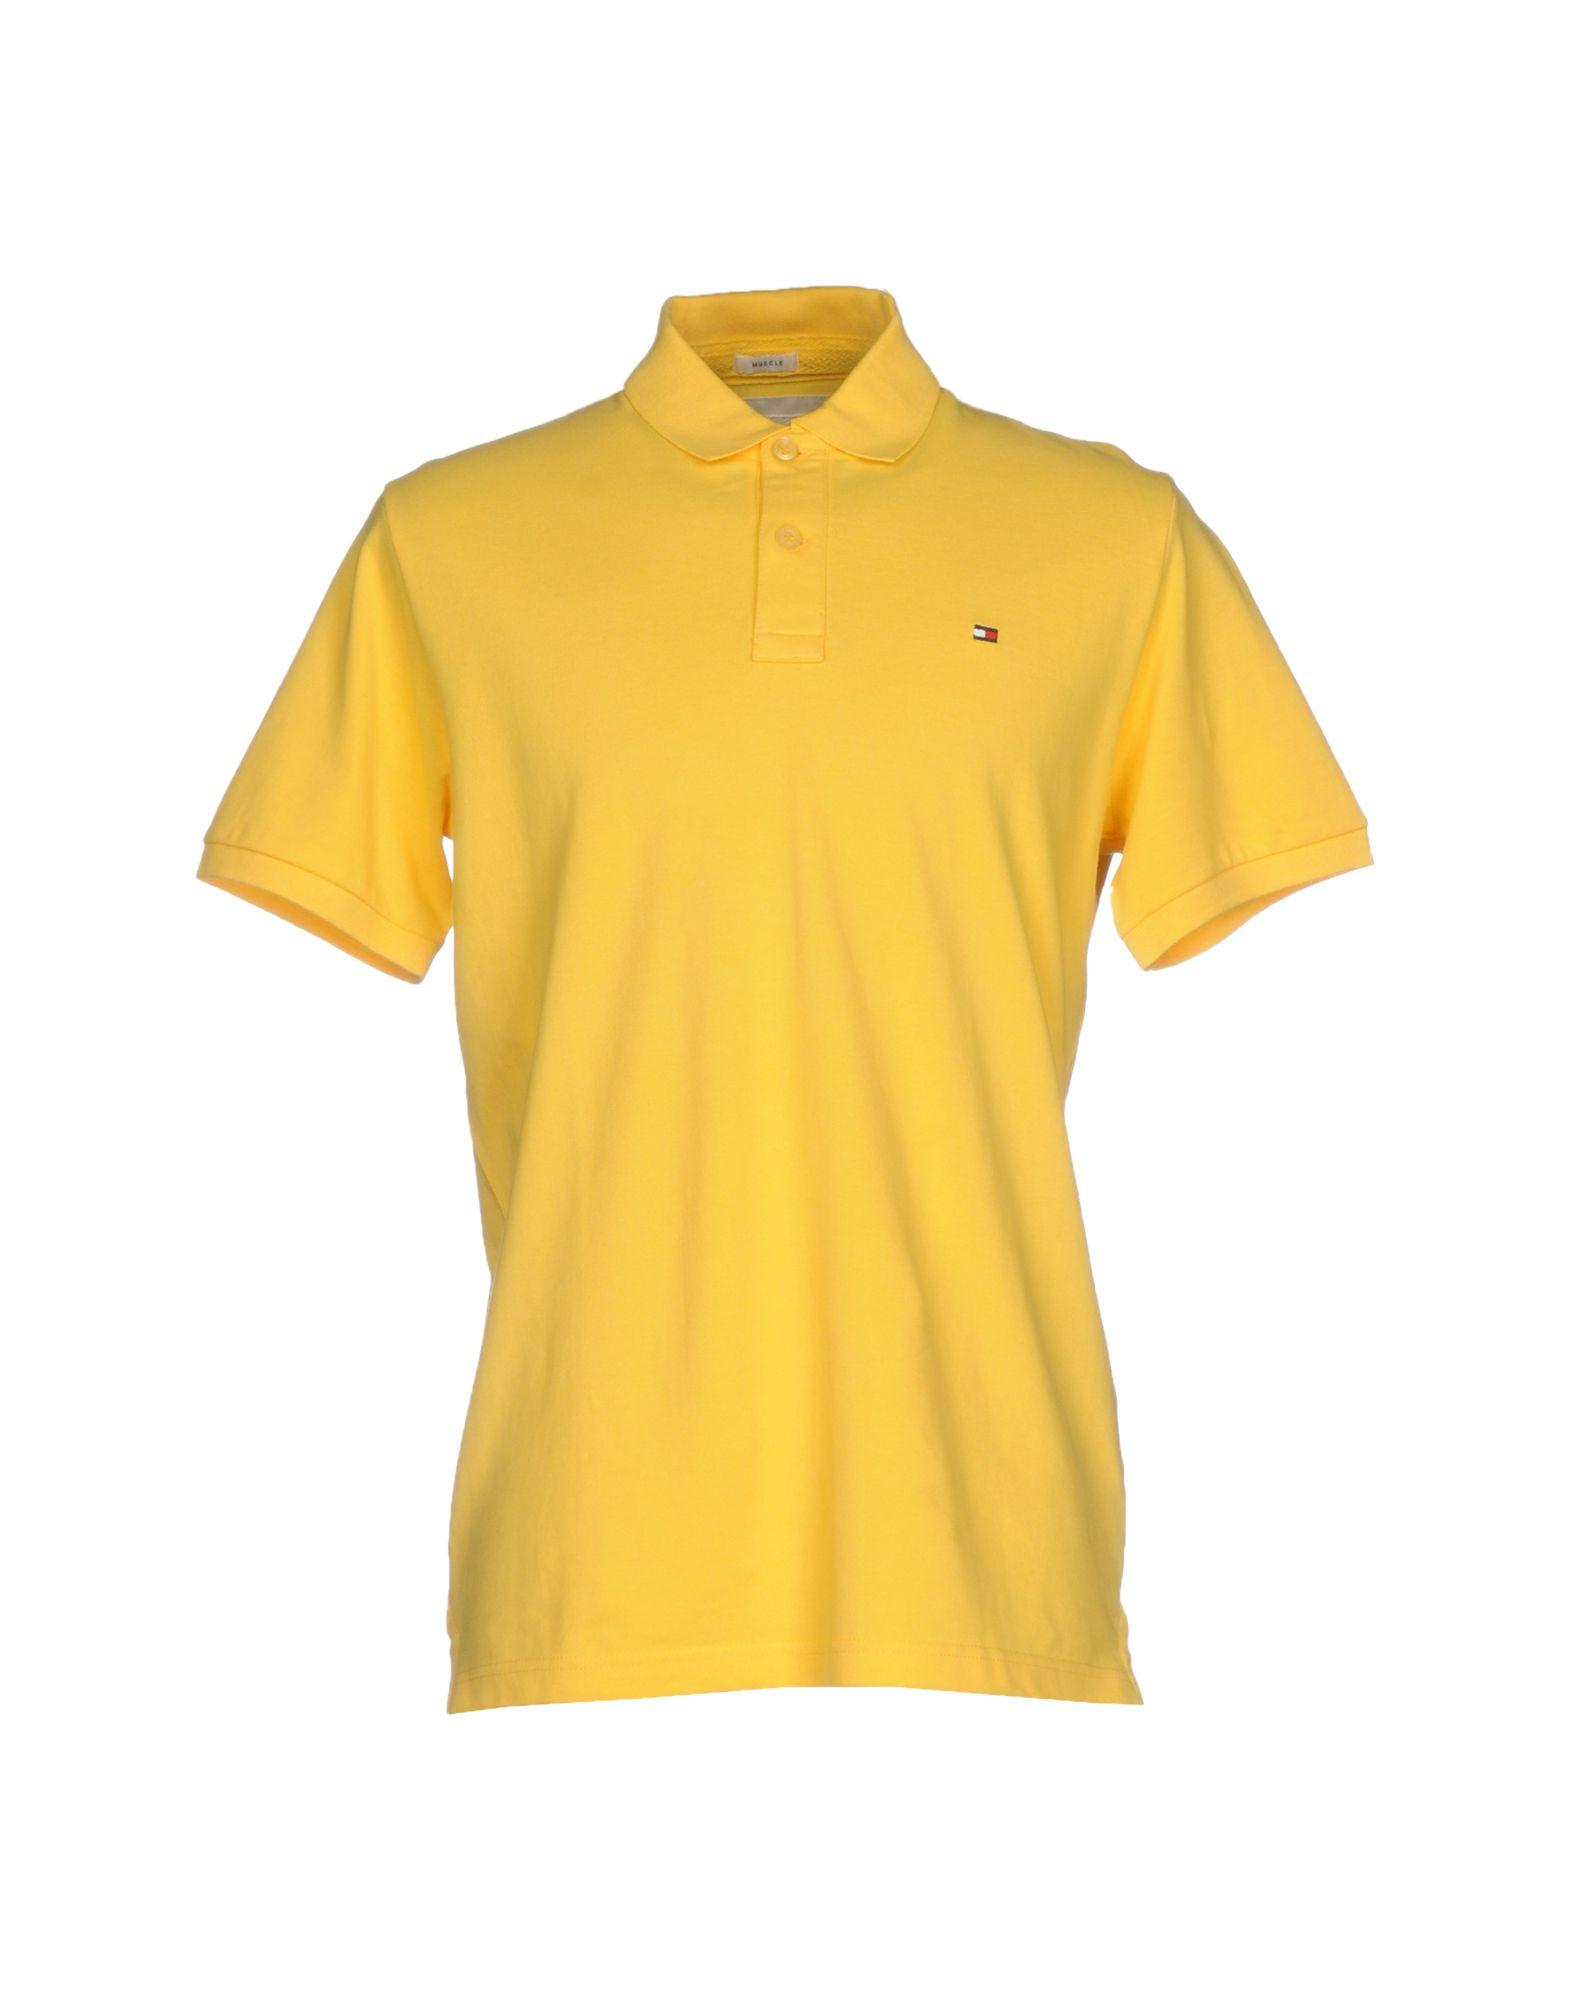 tommy hilfiger polo shirt in yellow for men lyst. Black Bedroom Furniture Sets. Home Design Ideas